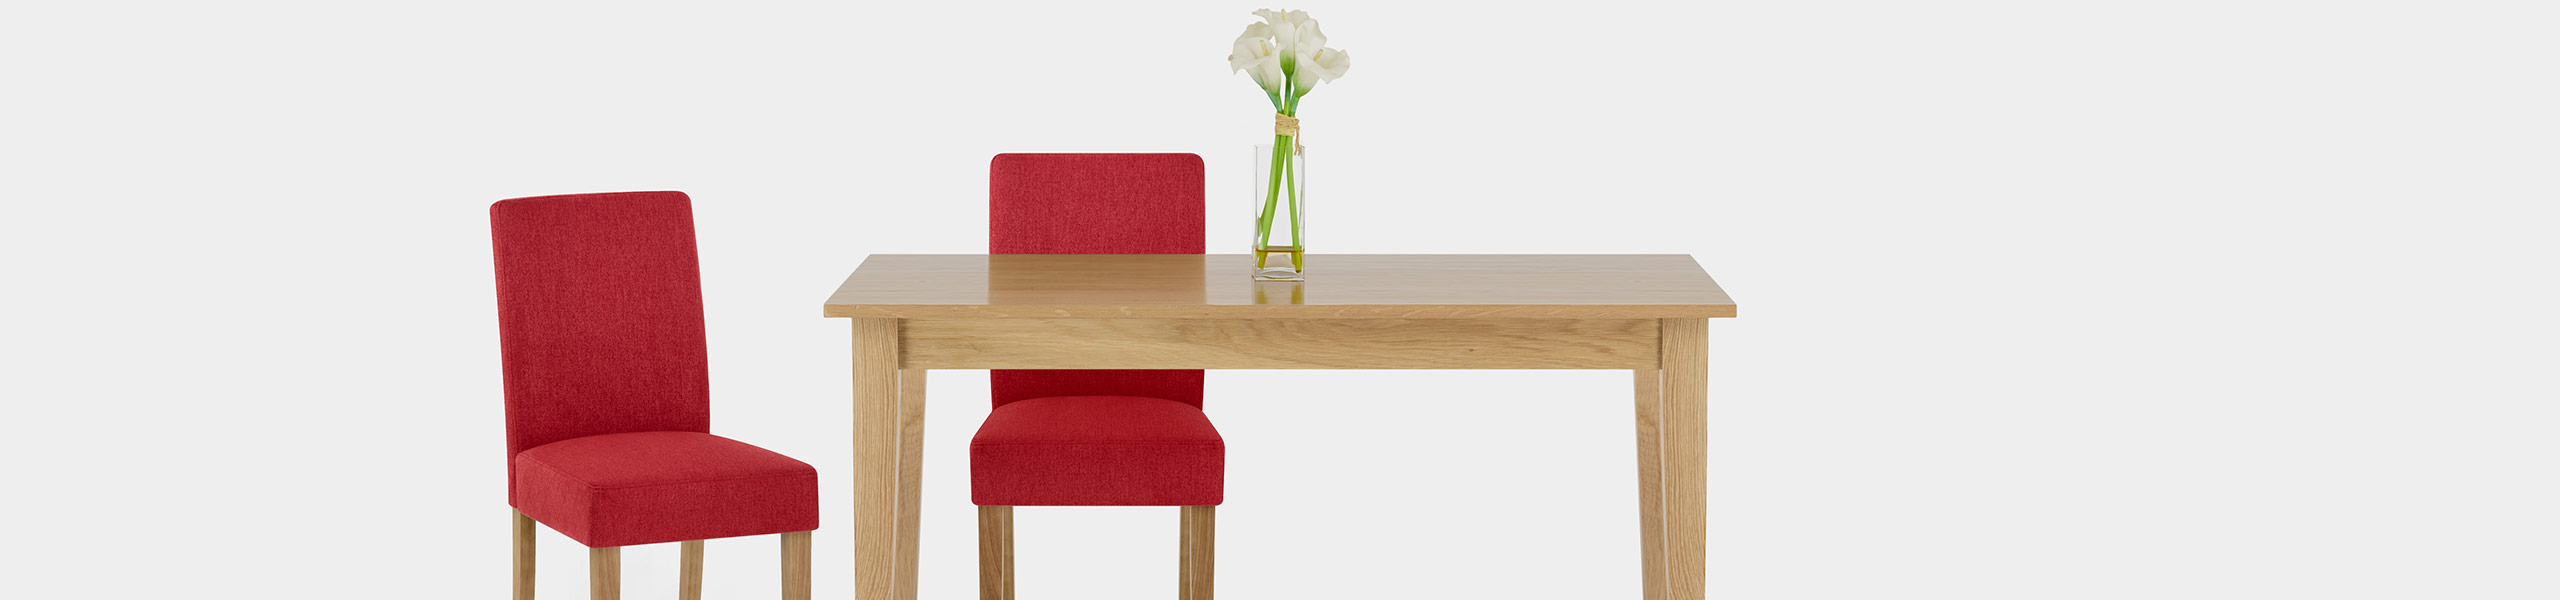 Austin Dining Chair Red Video Banner